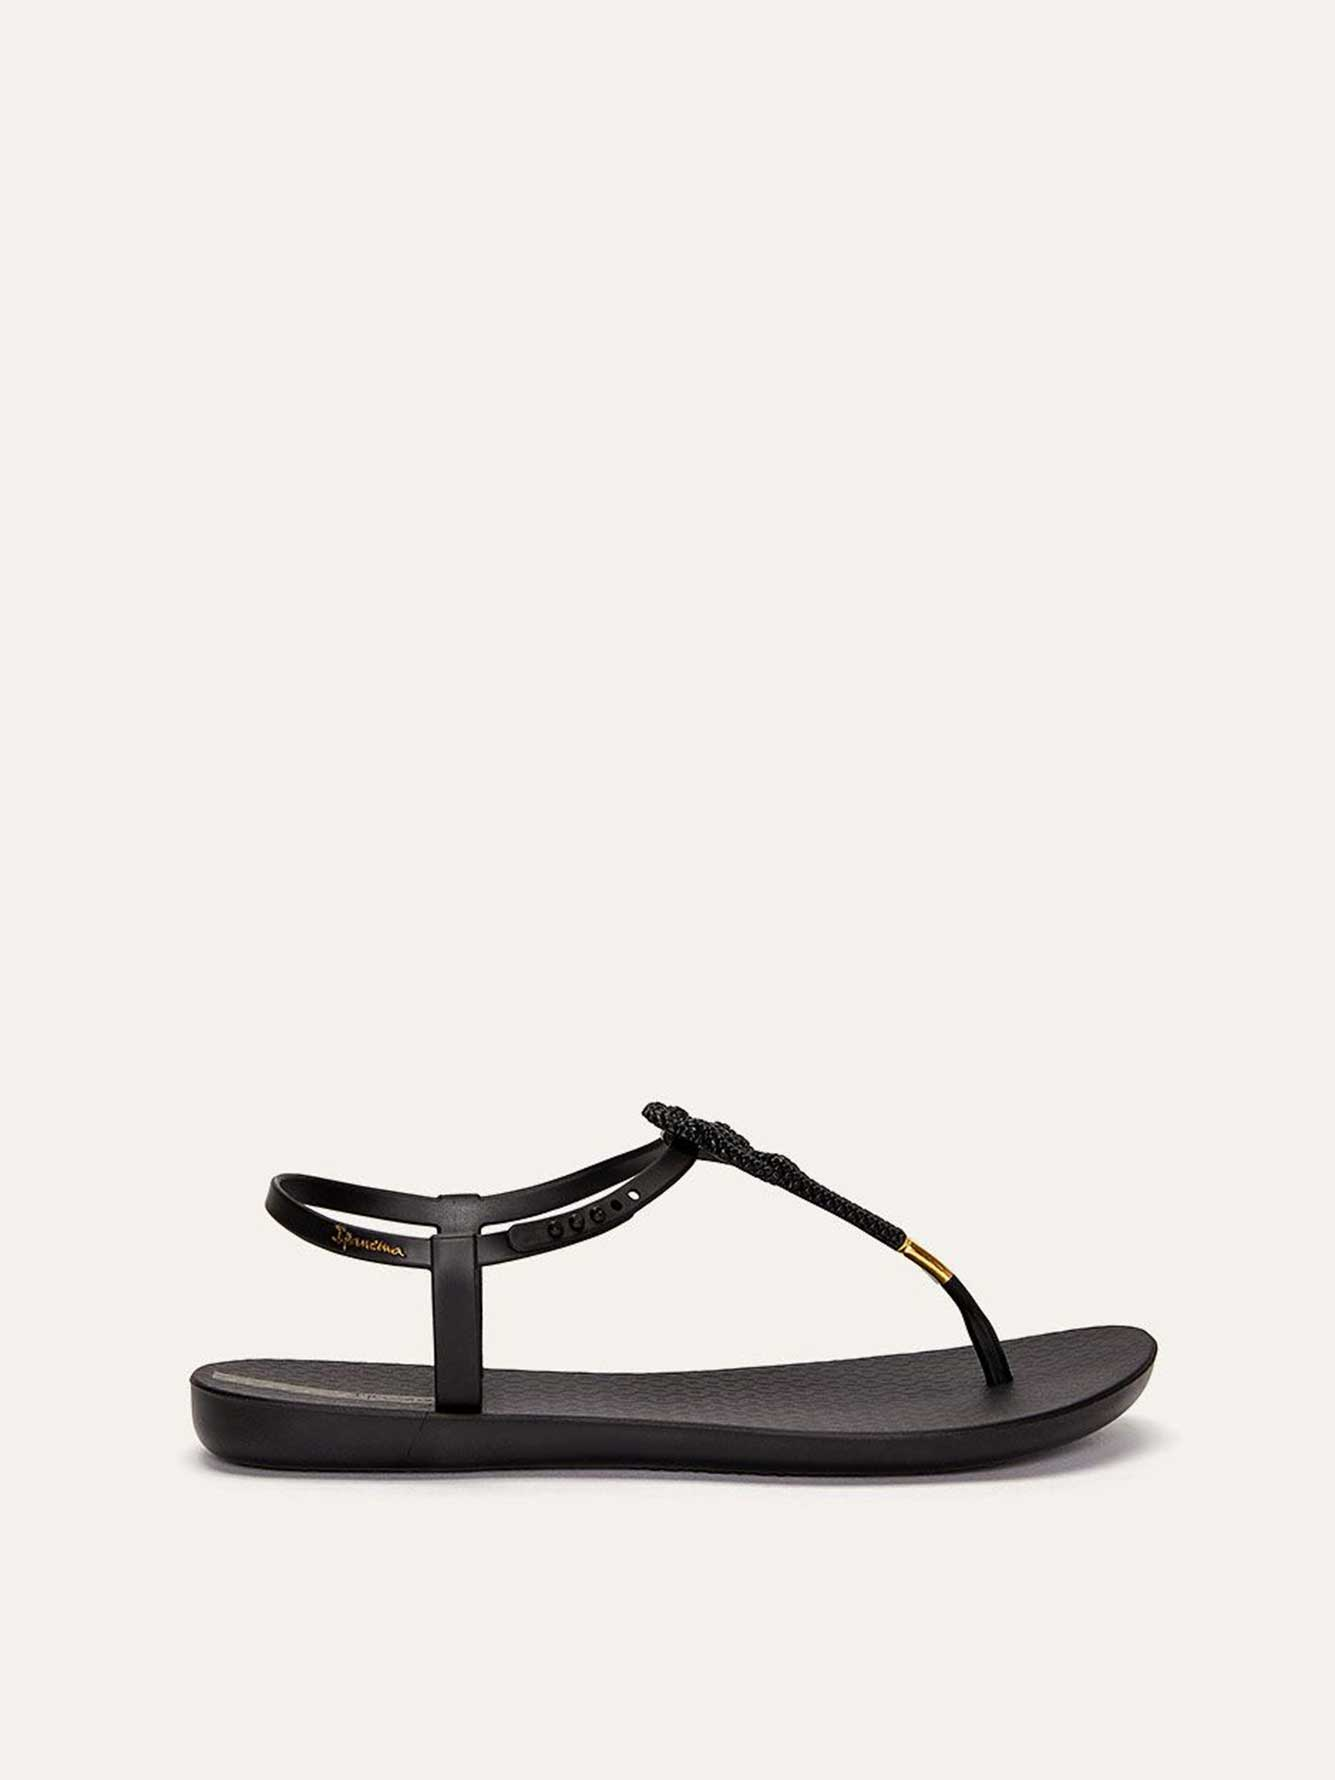 a7d44a757 Ipanema Mara Sandals